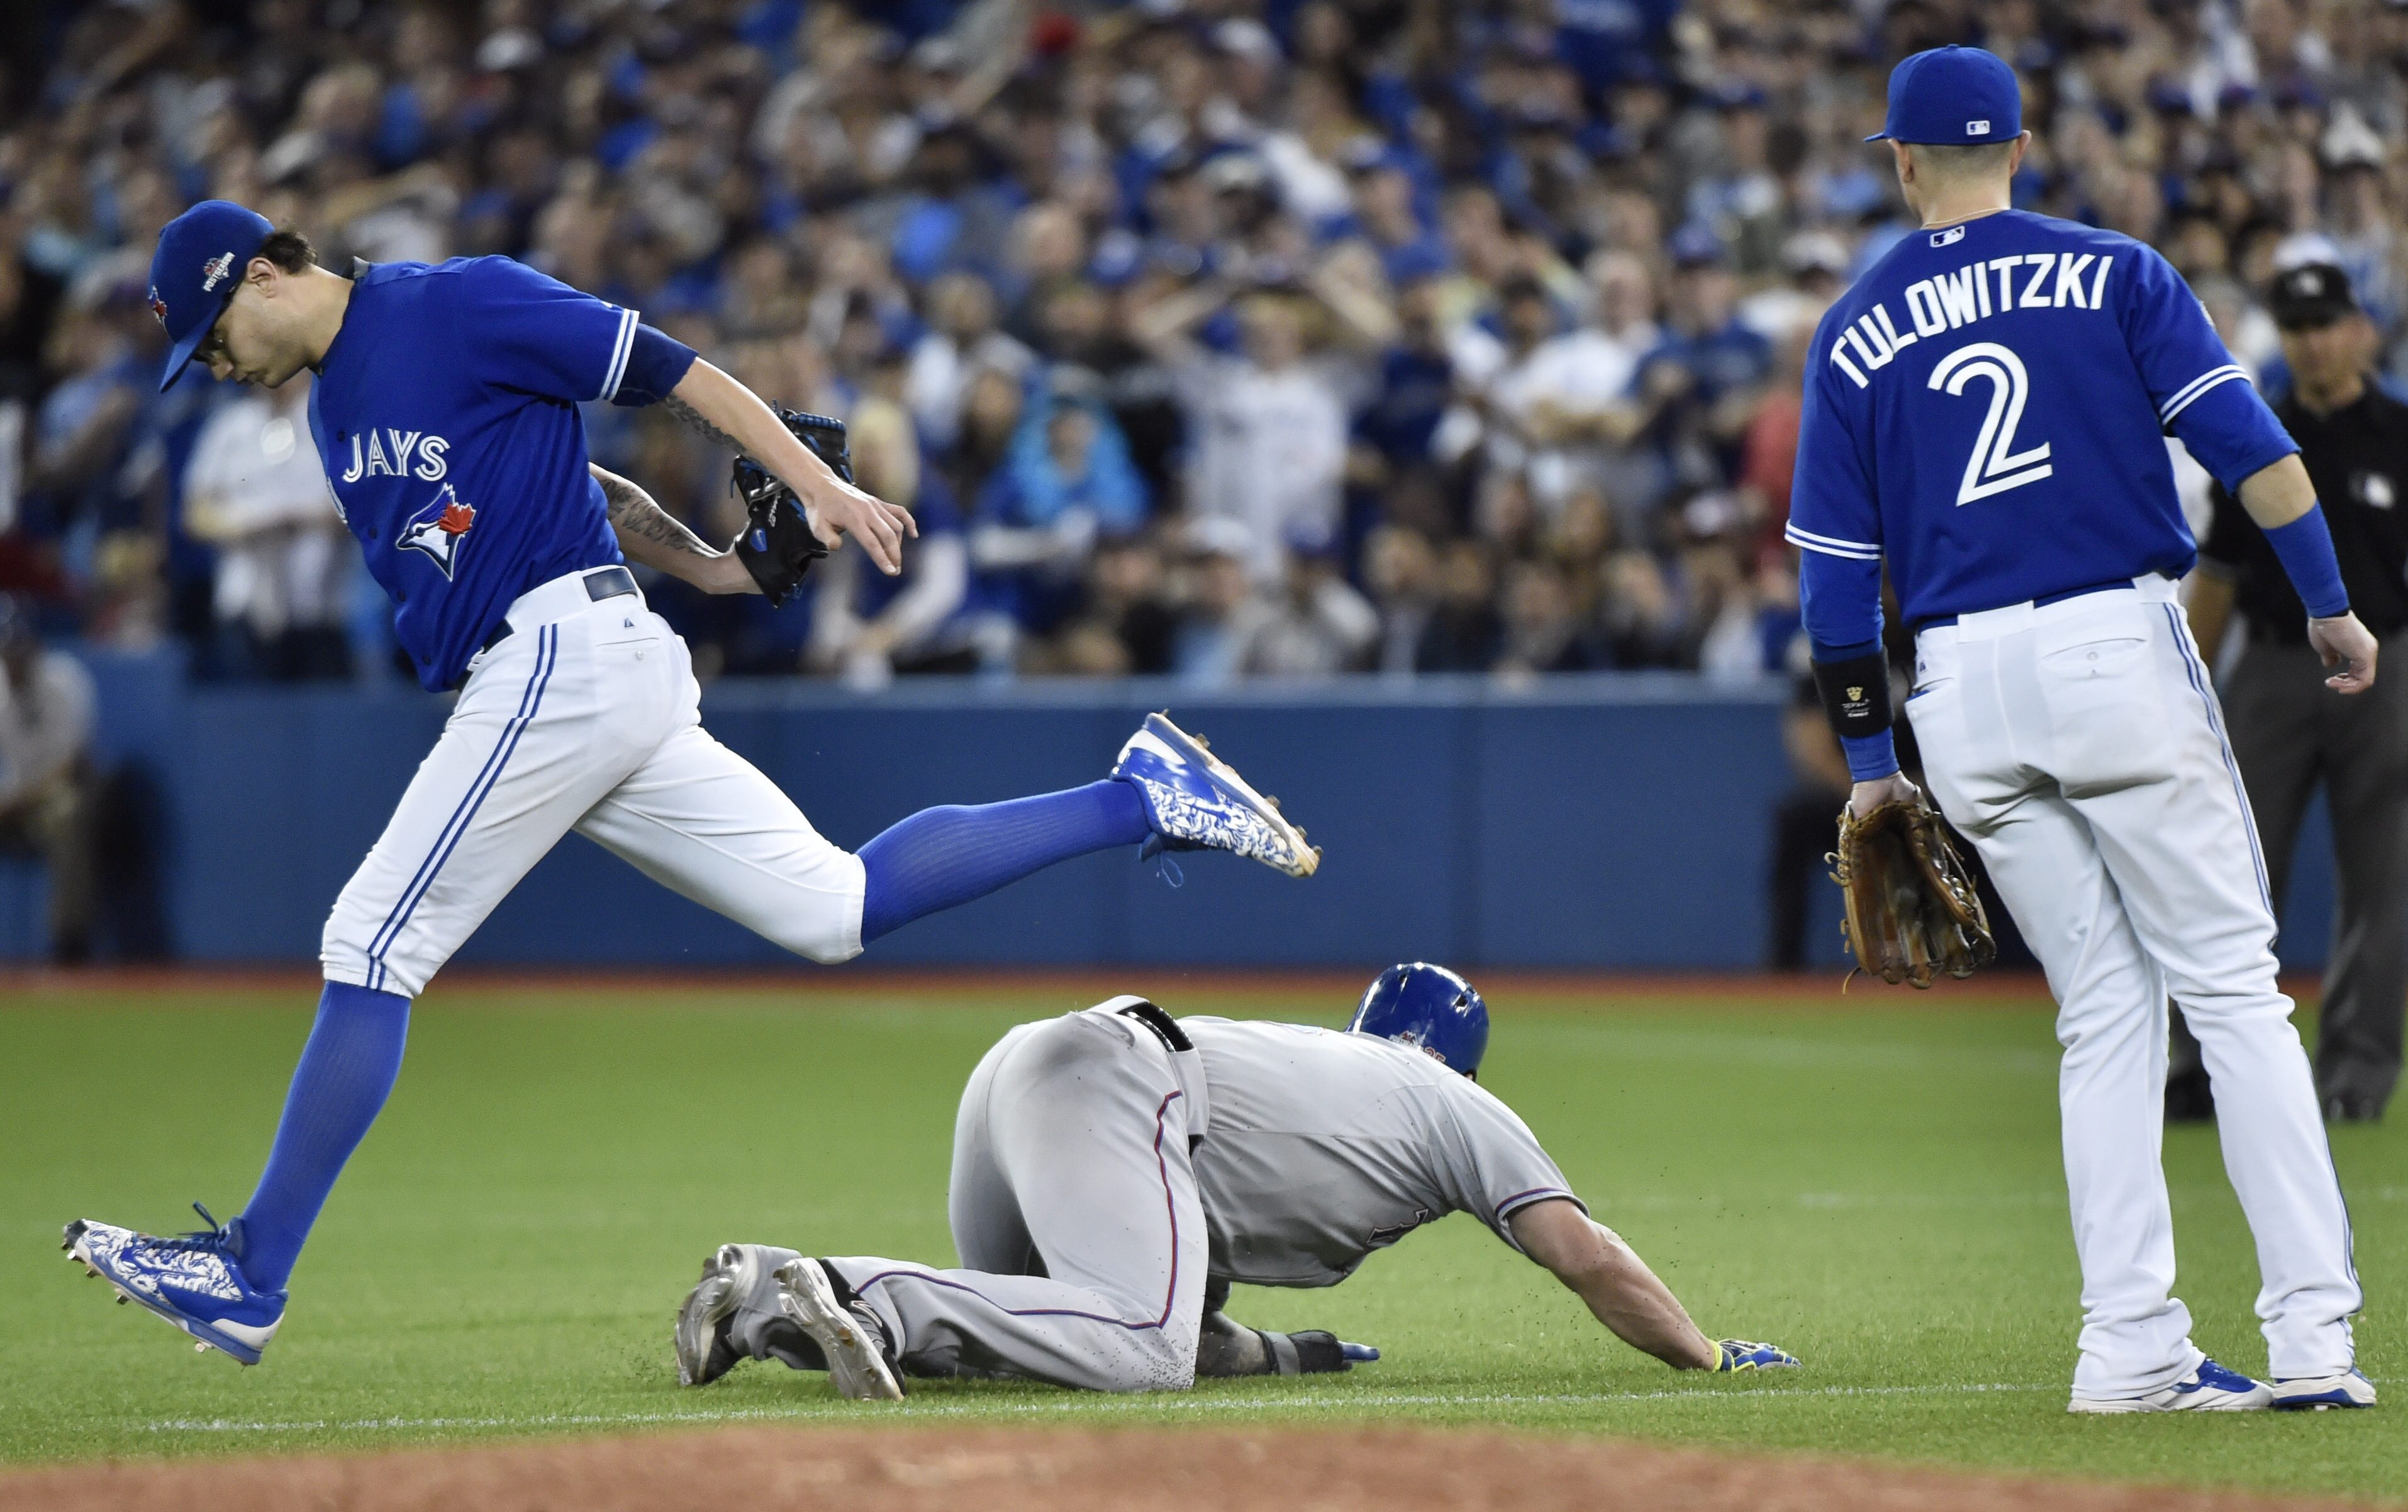 Texas Rangers' Mike Napoli, center, is tagged out by Toronto Blue Jays' Brett Cecil, left, trying to steal second base during the eighth inning in Game 2 of baseballs American League Division Series against the Texas Rangers  in Toronto on Friday, Oct. 9,